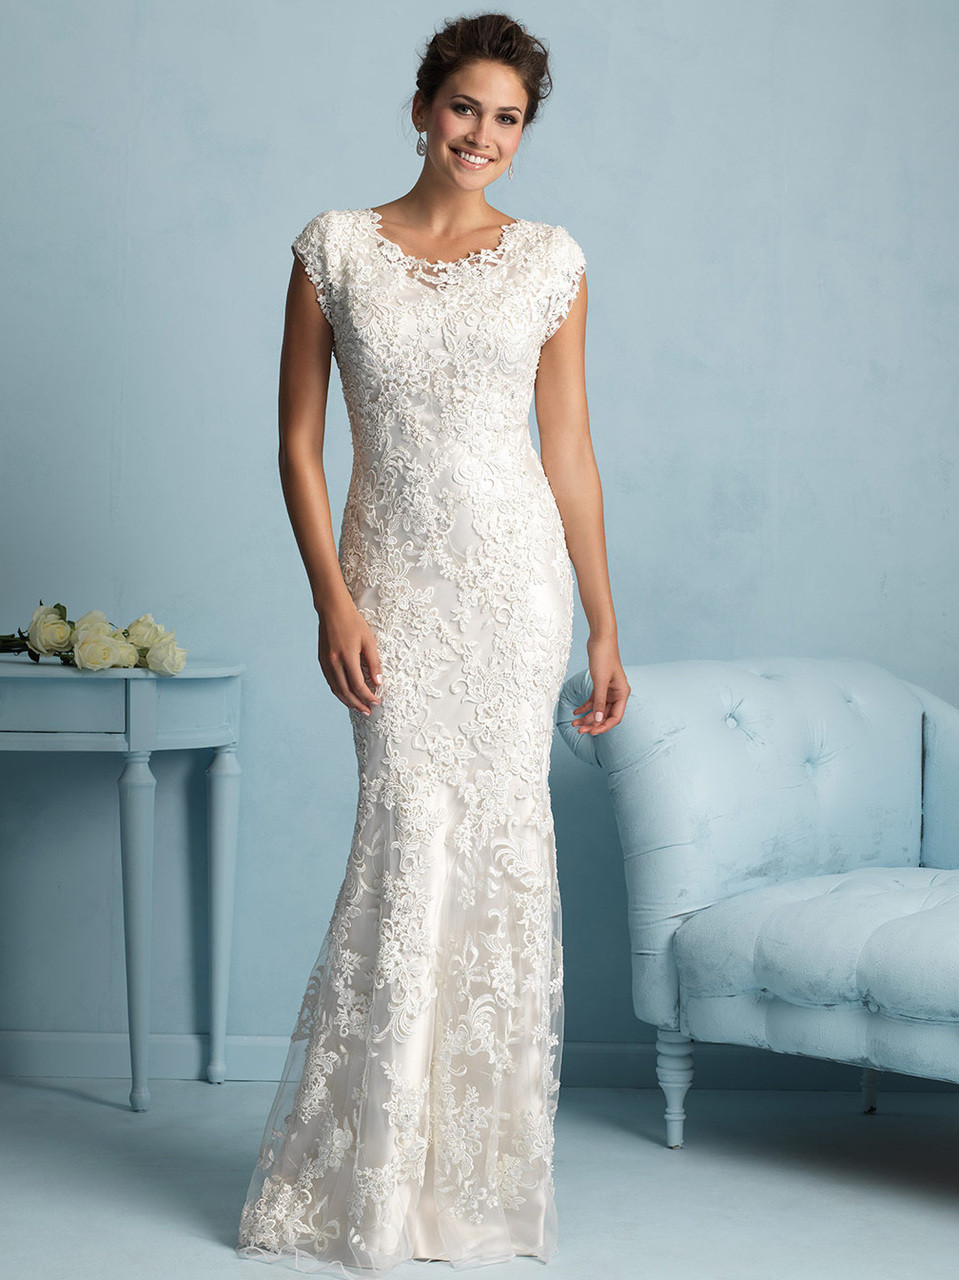 Formfitting Lace Allure Modest Wedding Dress M536: Teal Wedding Dresses S At Websimilar.org